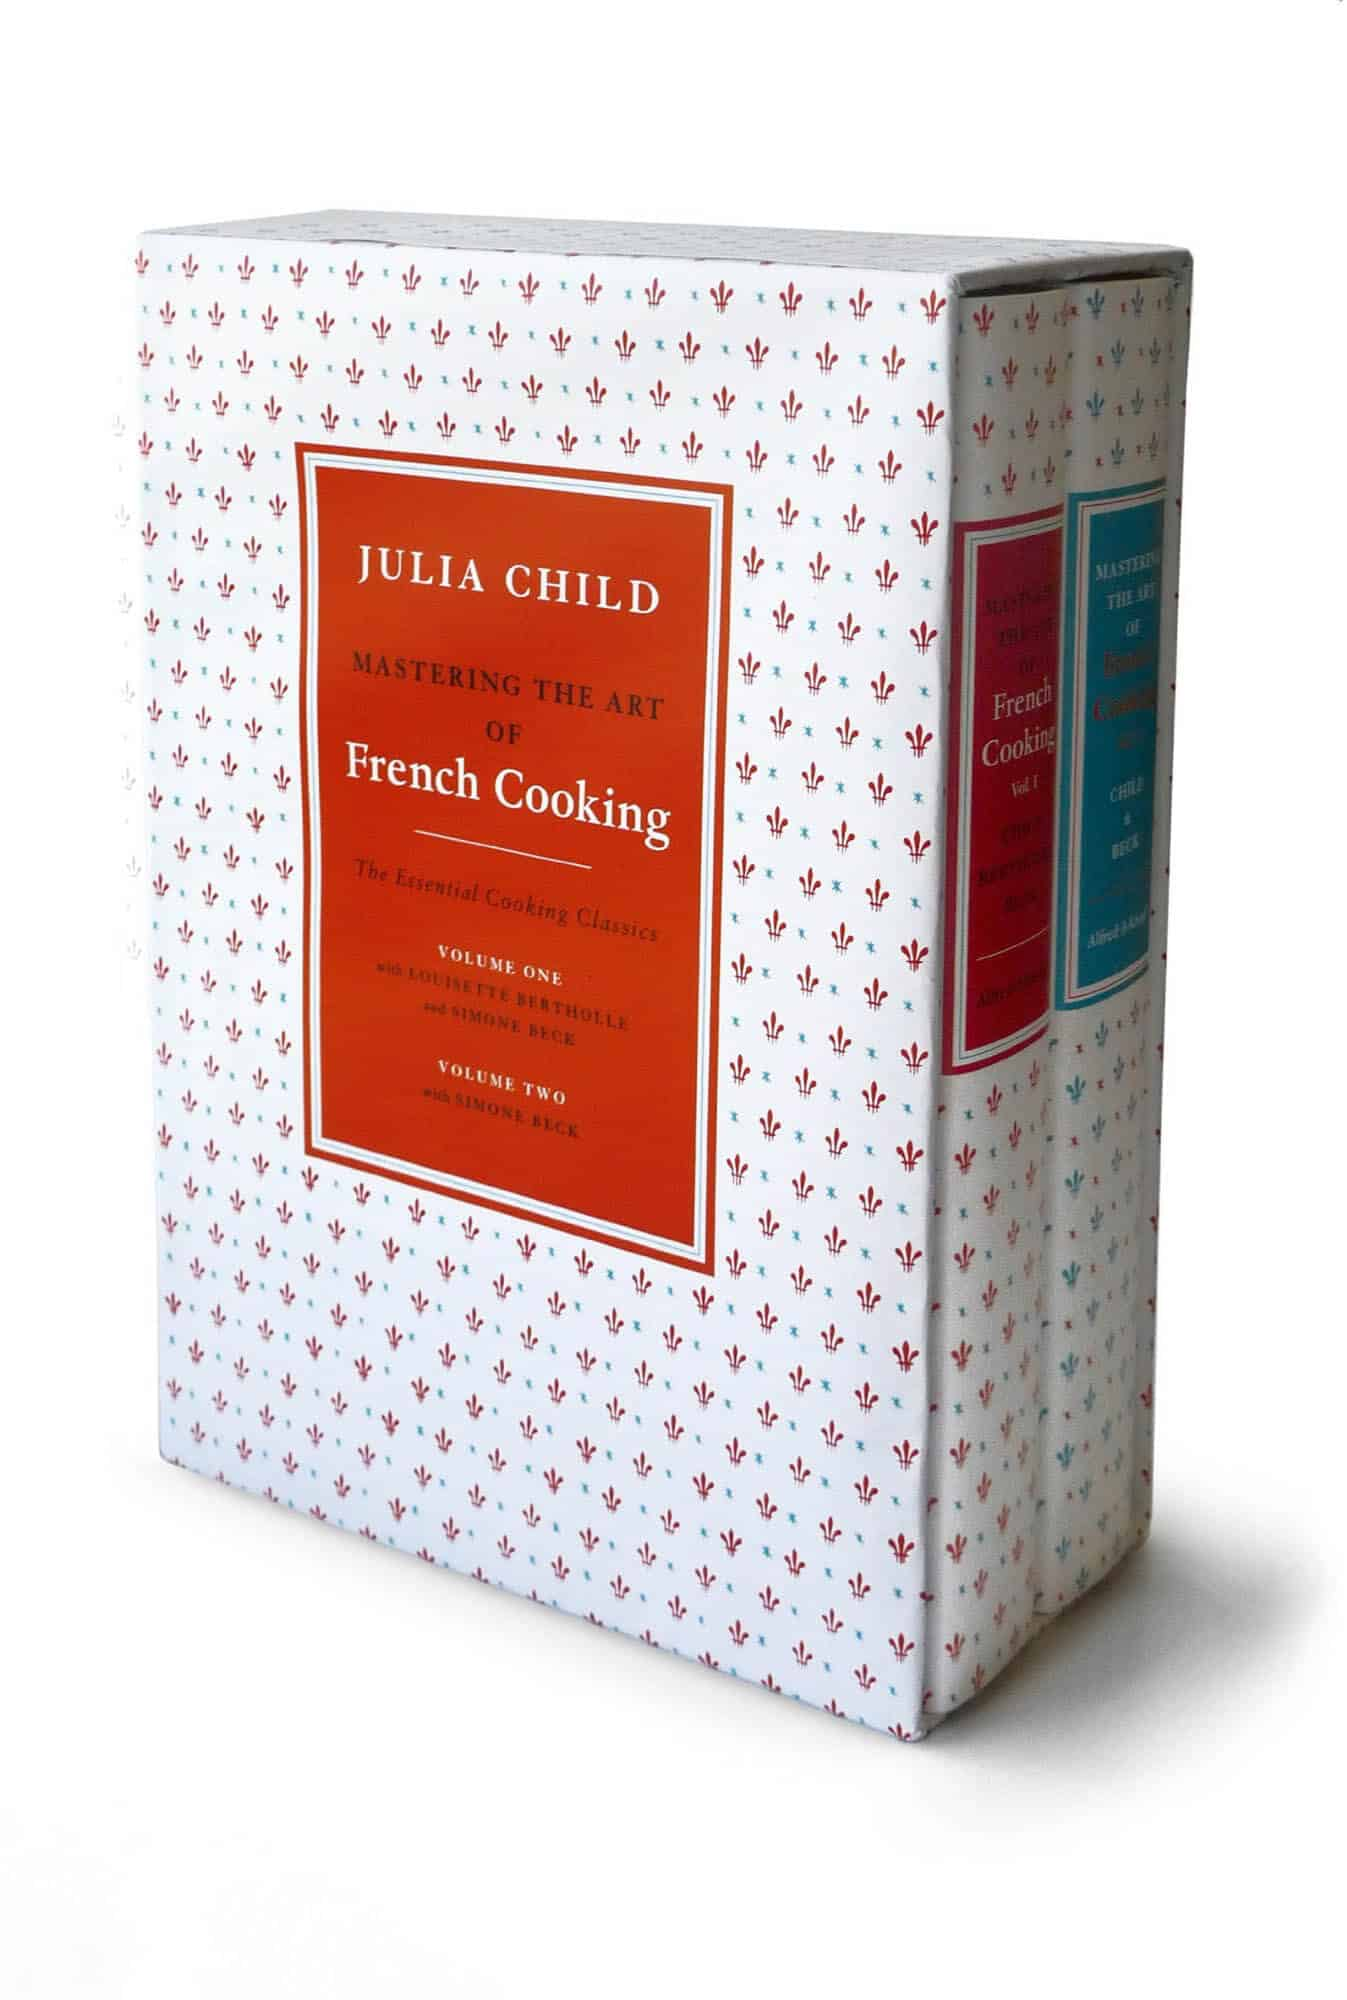 The two volume set by Julia Child